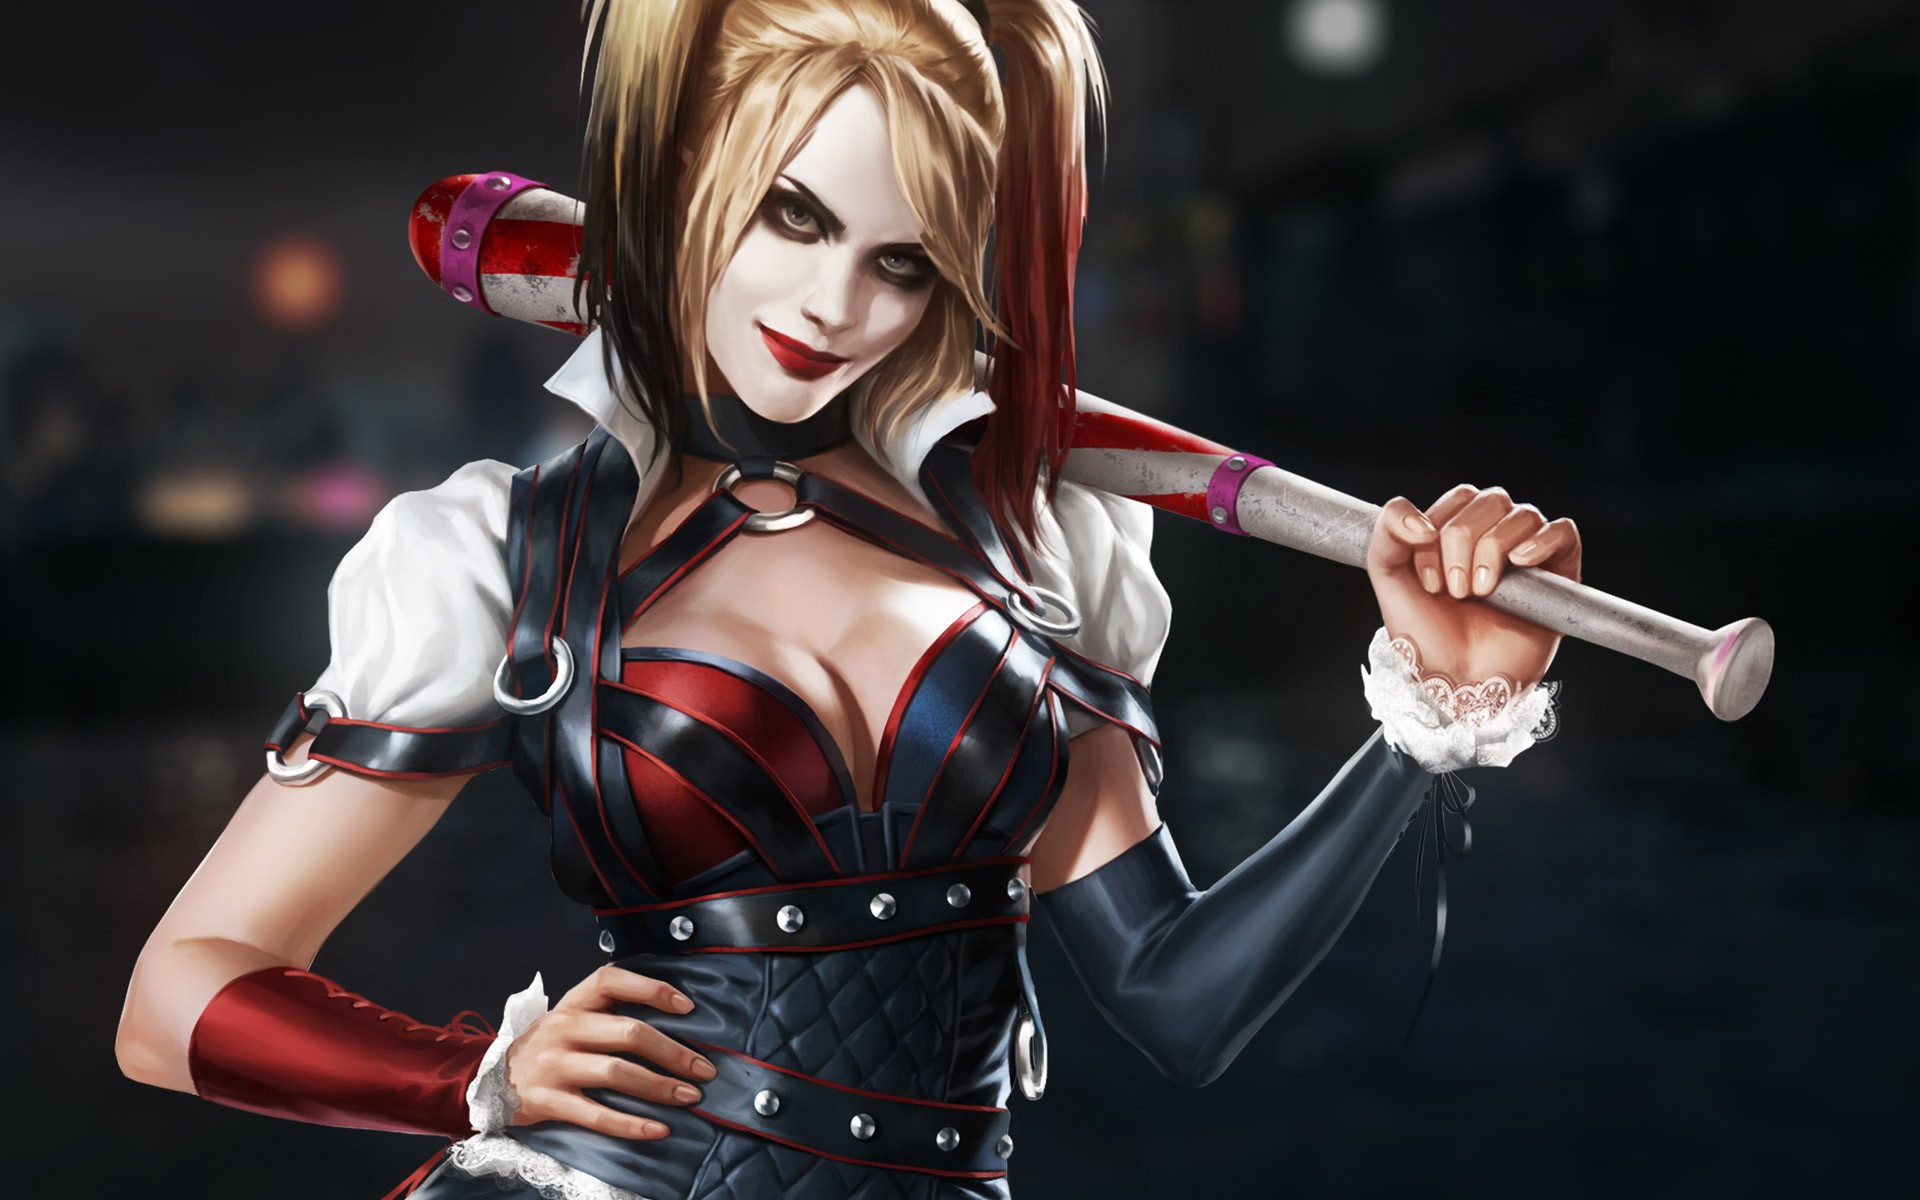 Suicide Squad director talks Harley Quinn